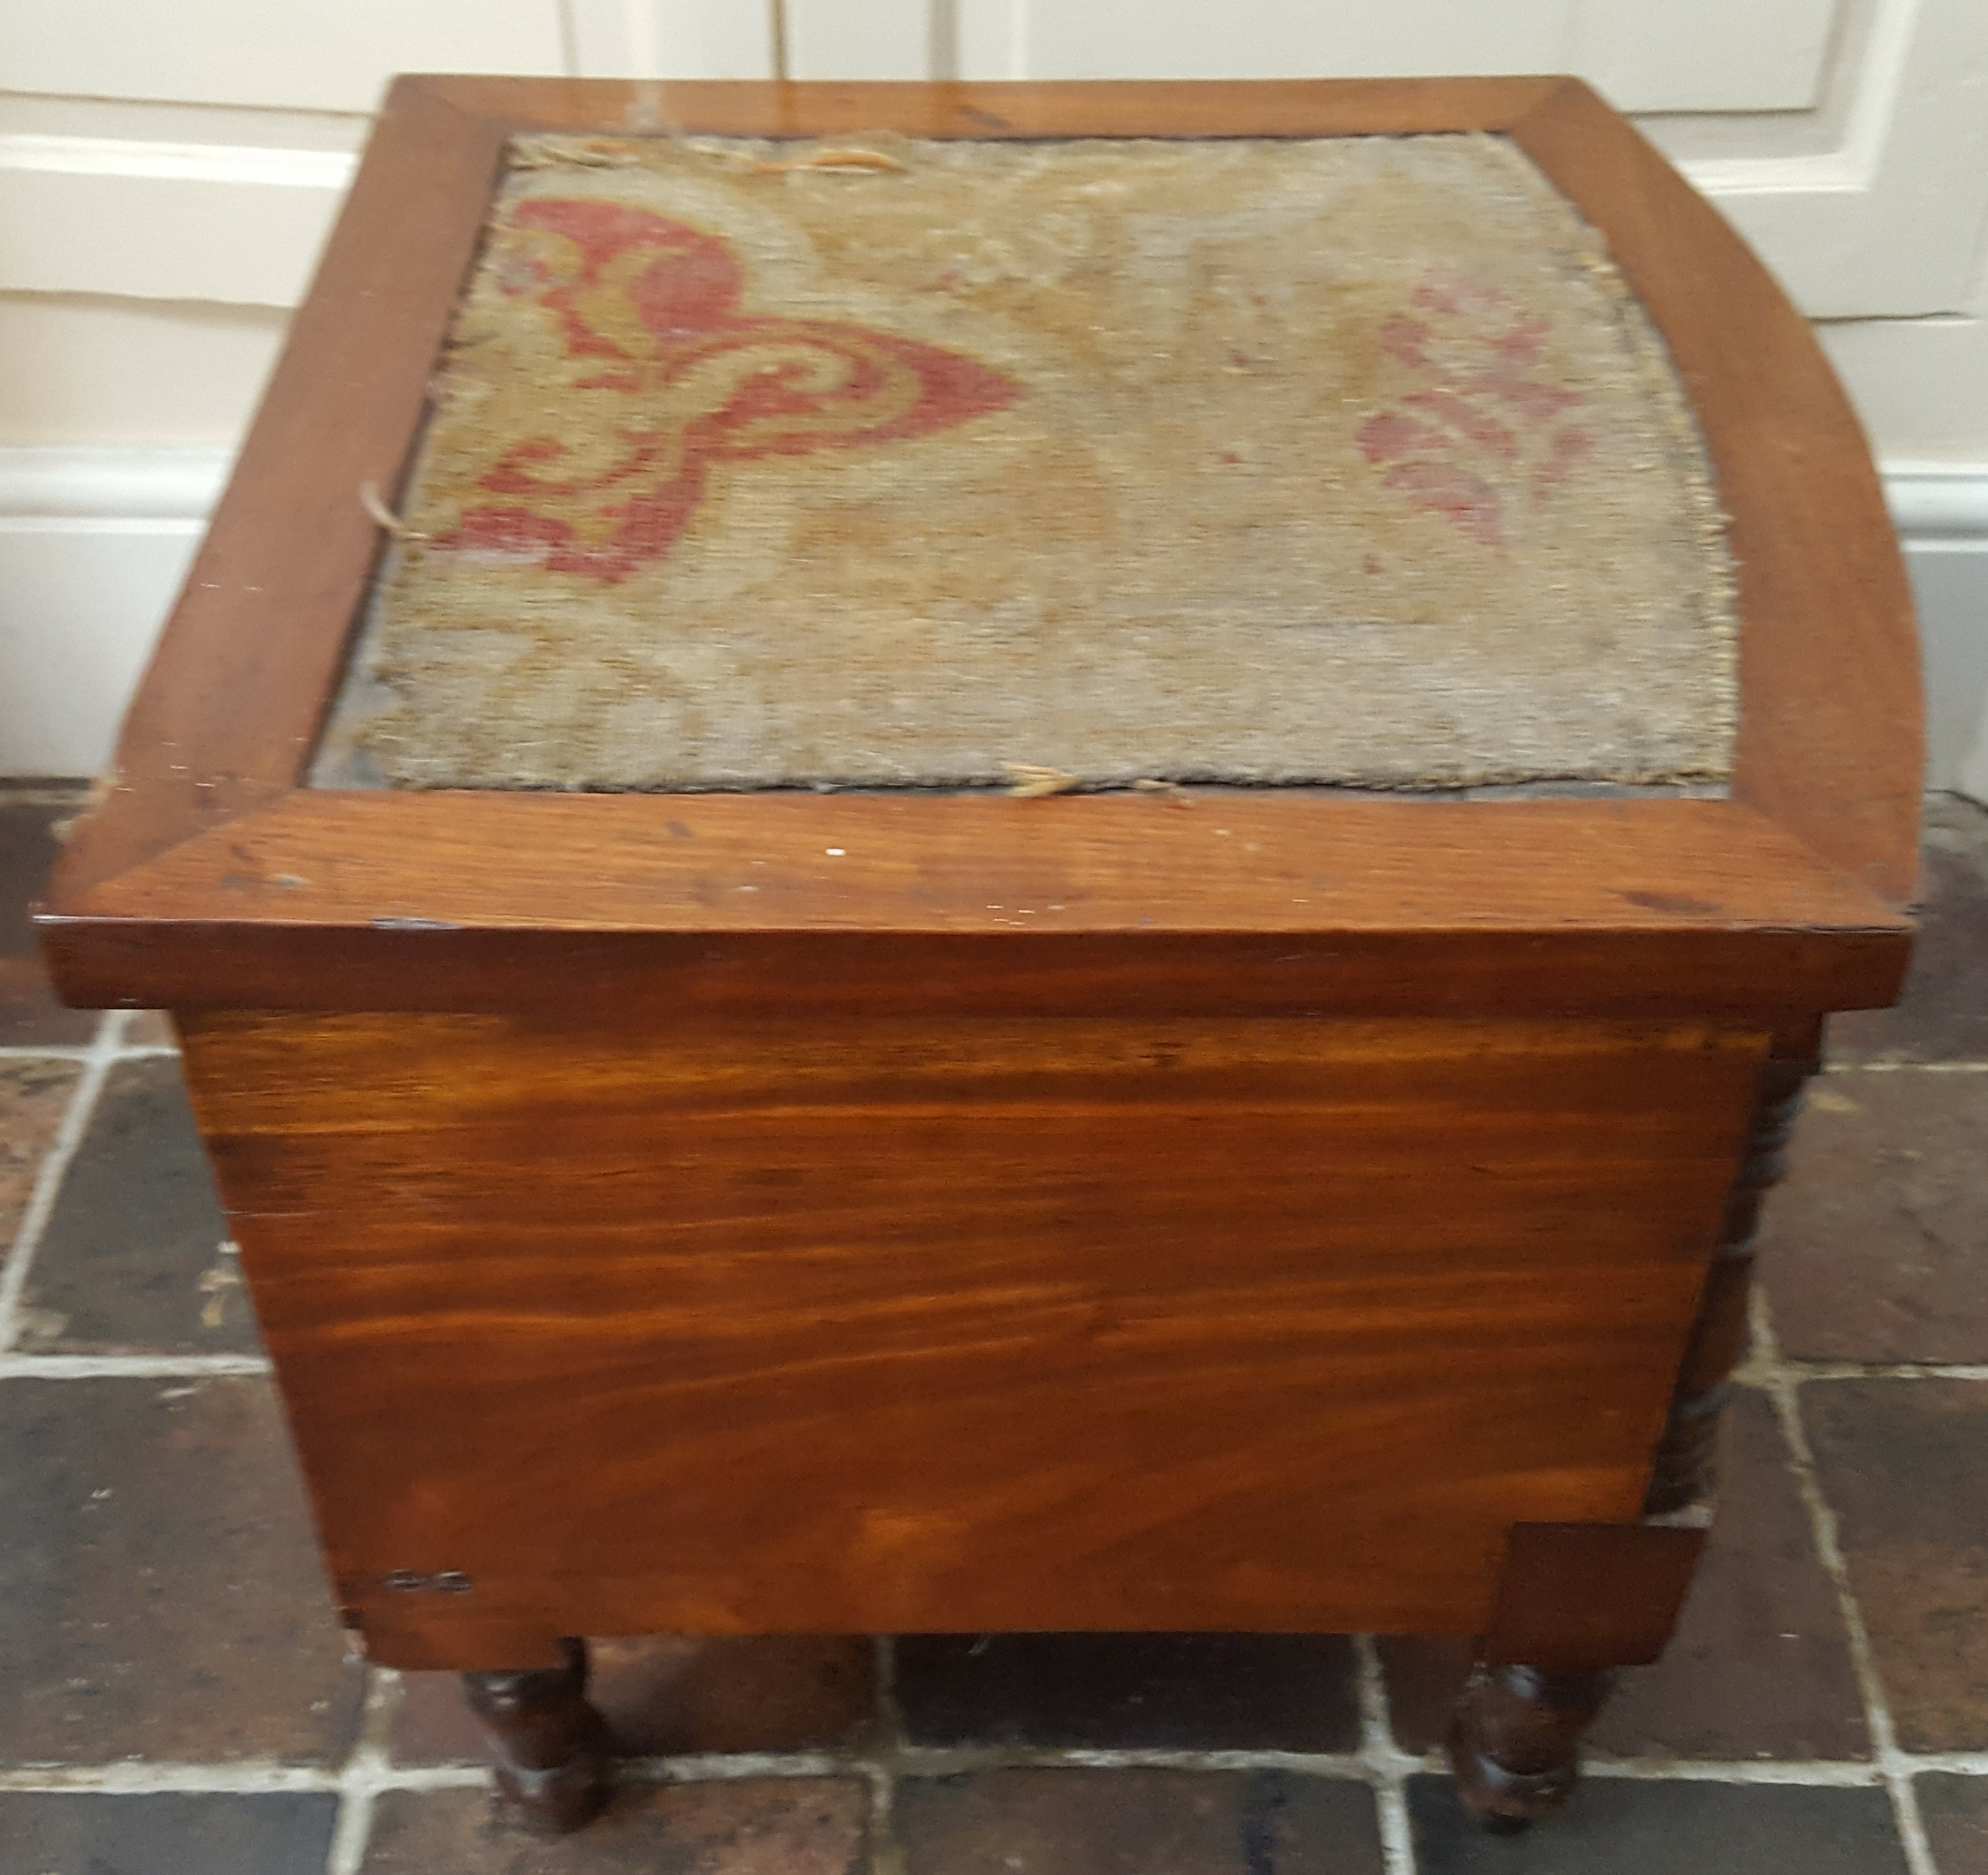 Lot 26 - Antique Victorian or Earlier Commode with original pot